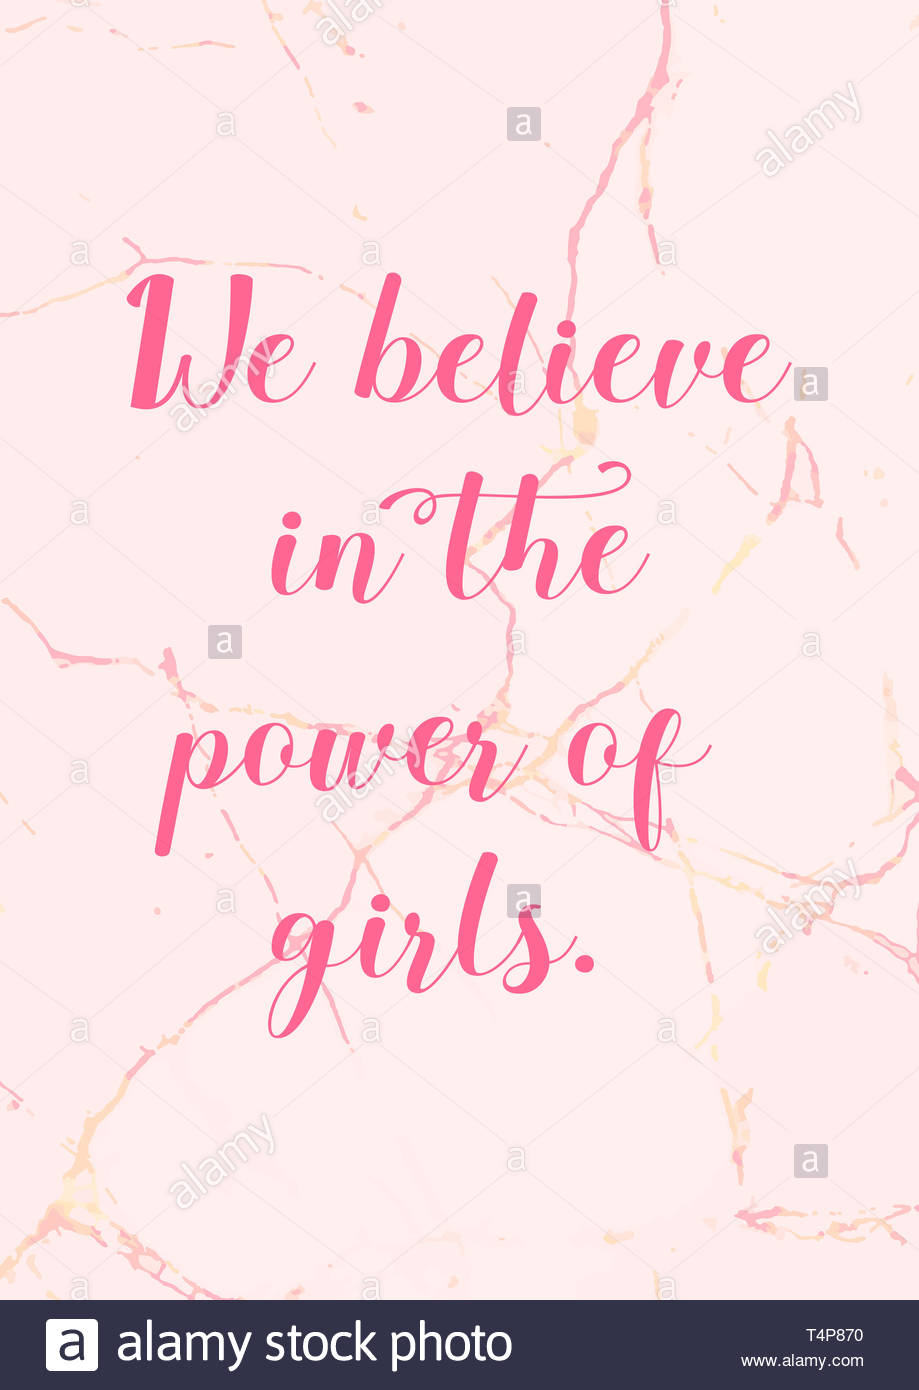 We believe in the power of girls Girl power quote with pink 919x1390